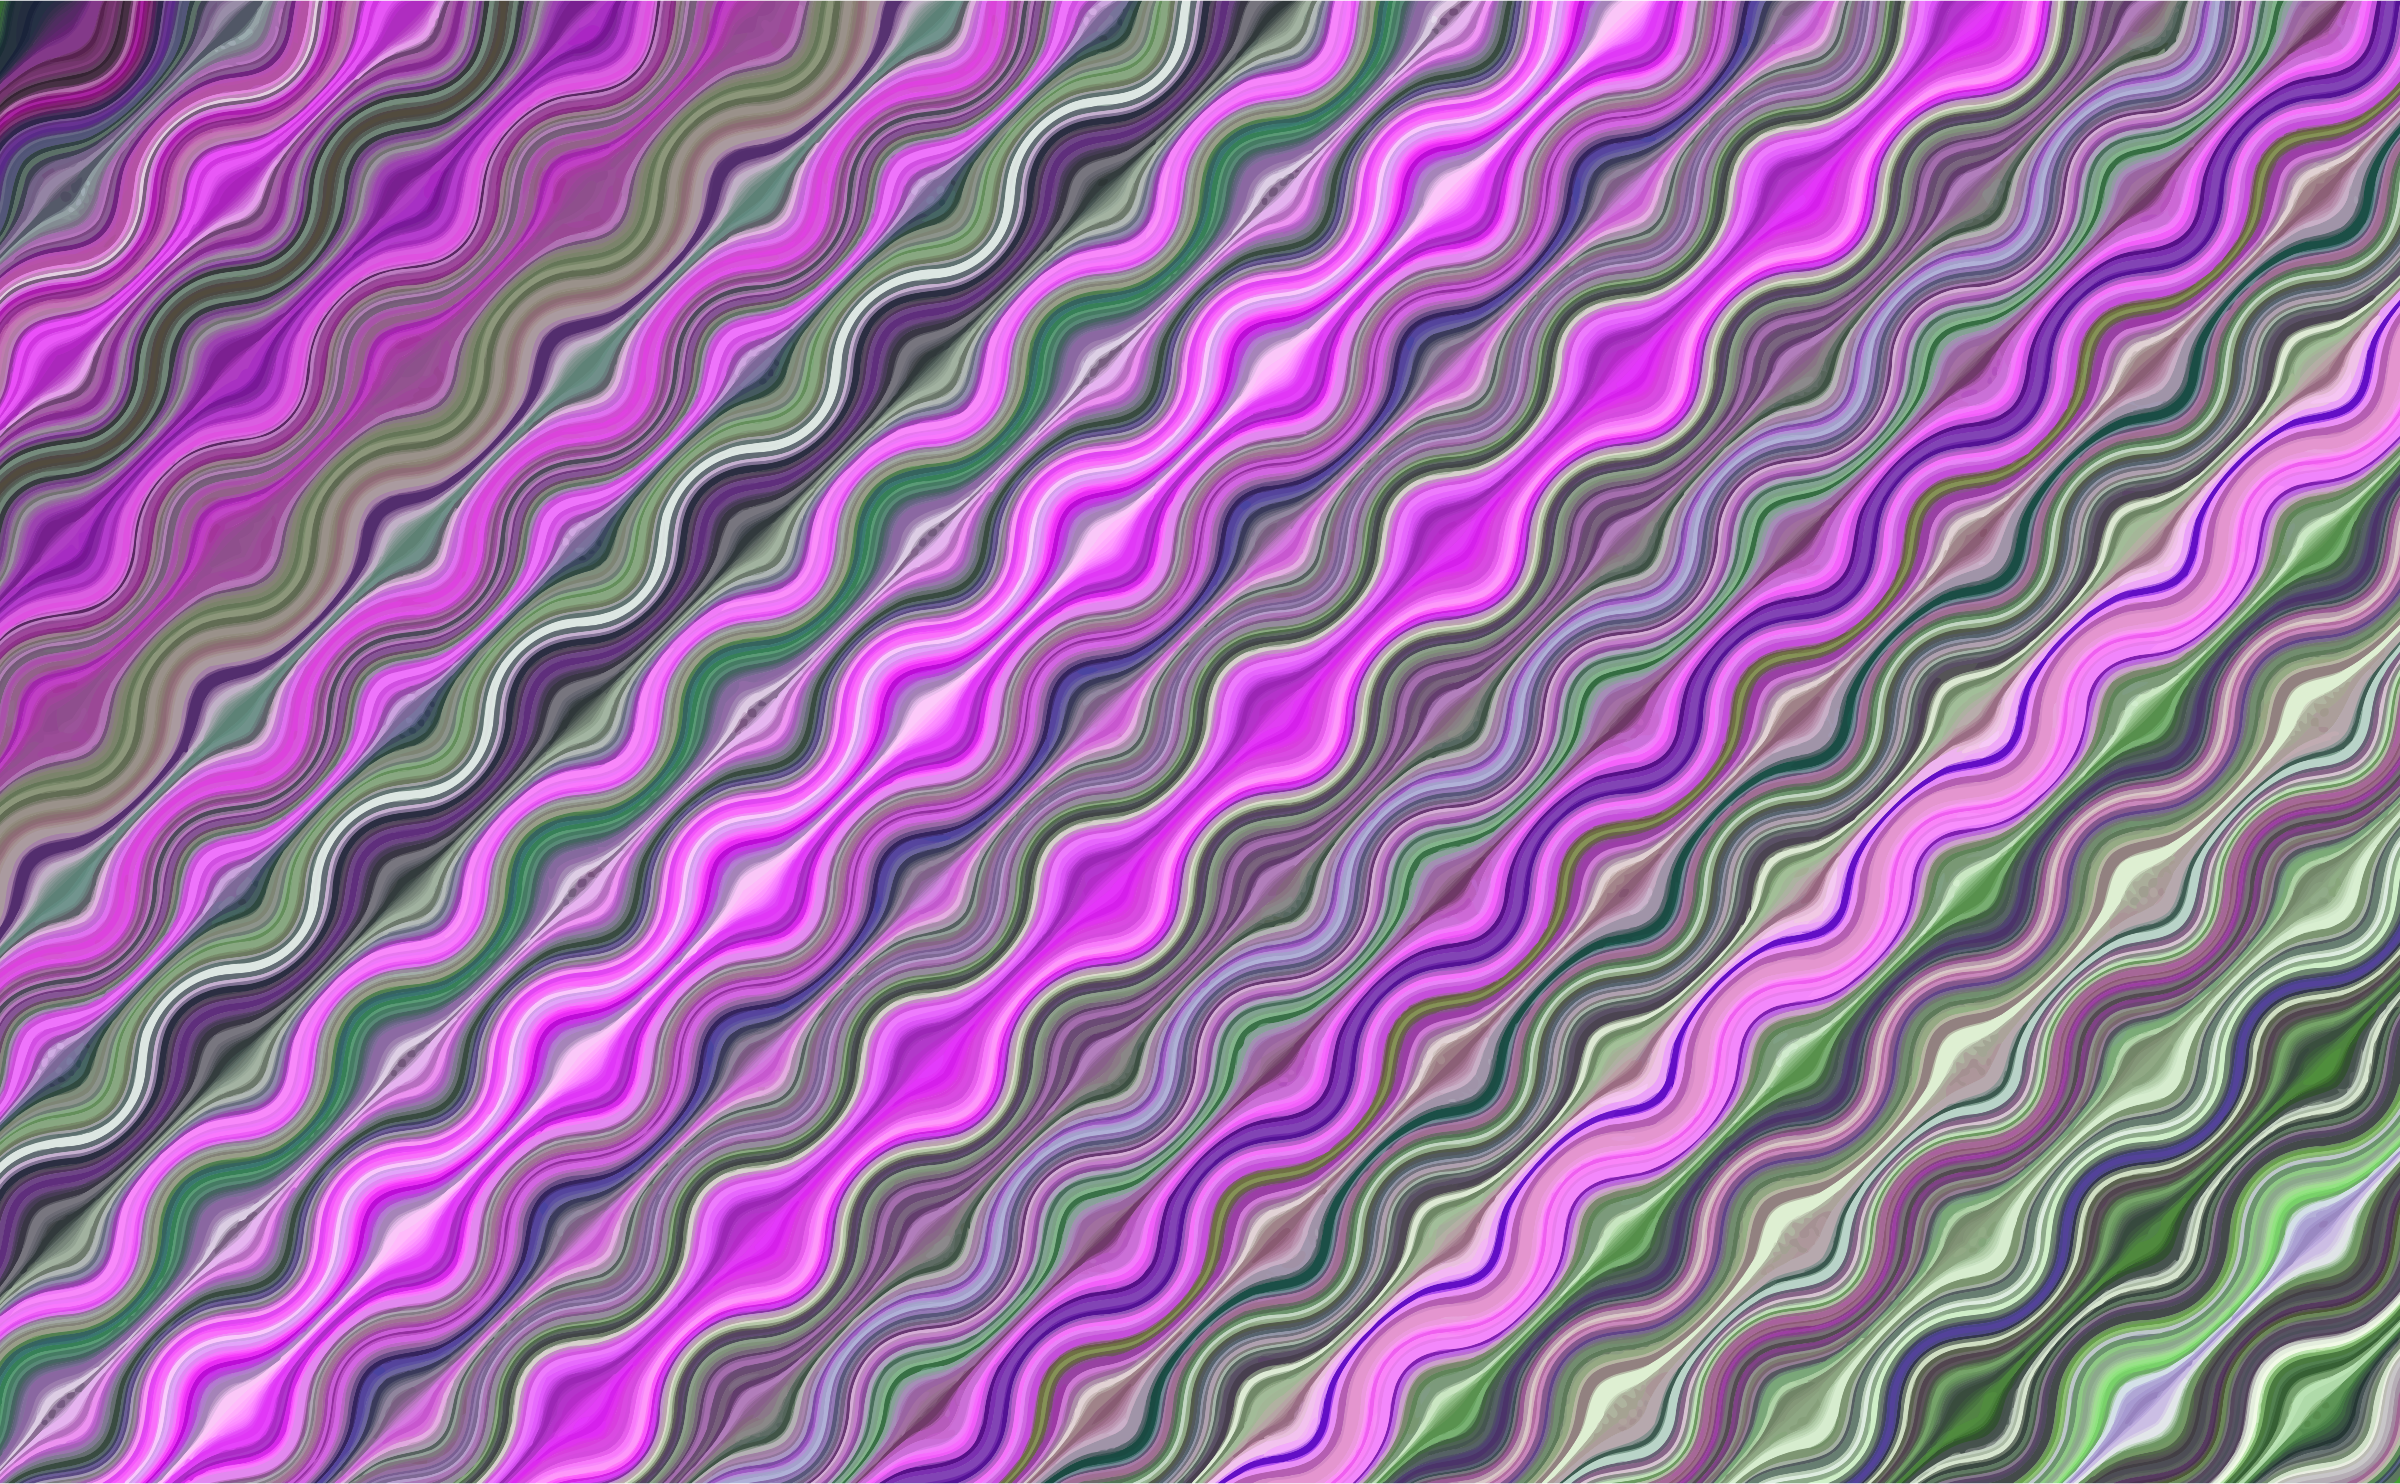 Background pattern 216 (colour 6) by Firkin